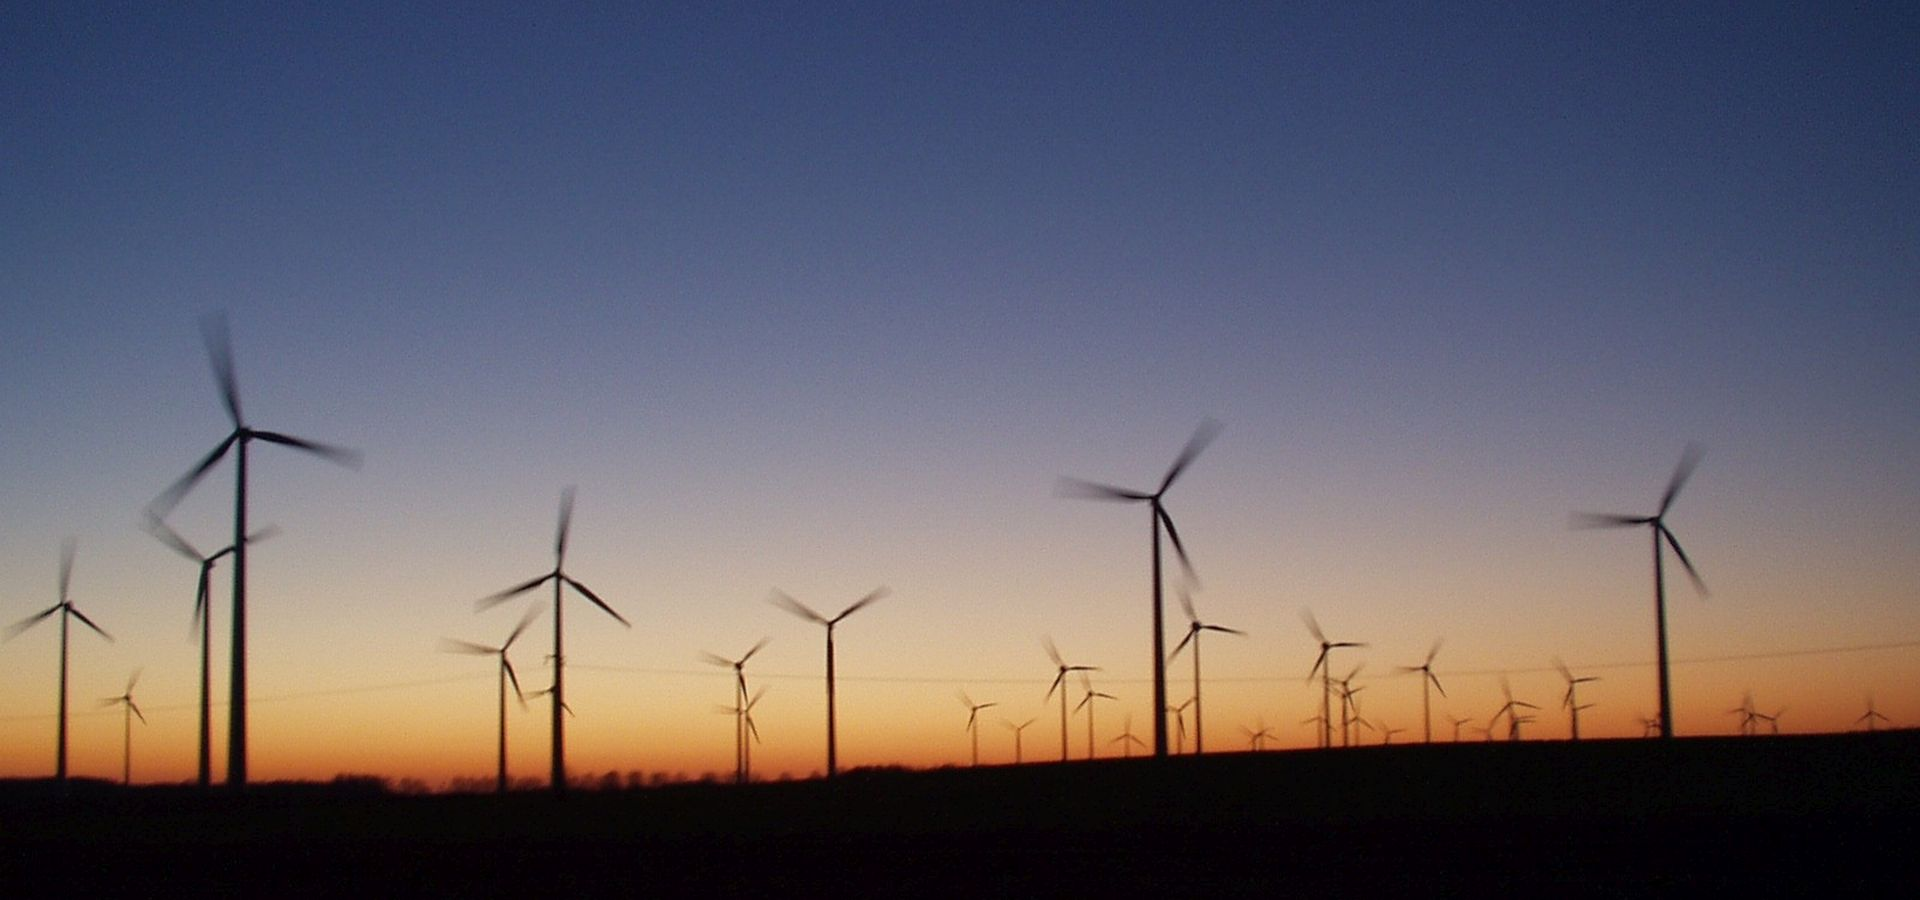 silhouttes of wind turbines against a sunset